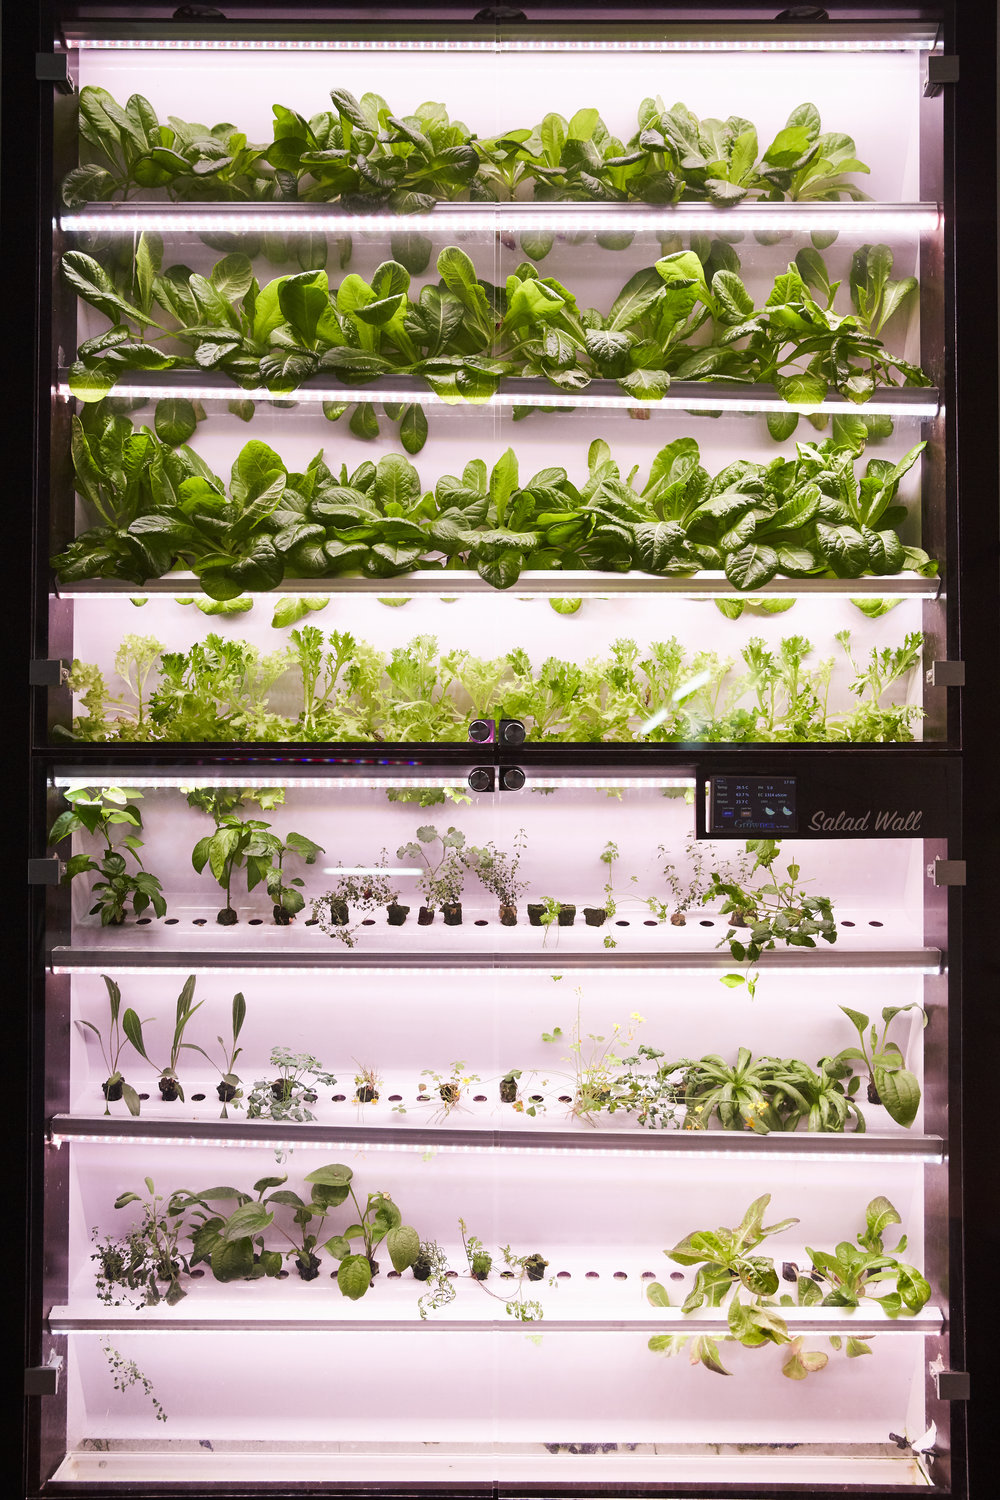 Grow what you want in one of our indoor systems.